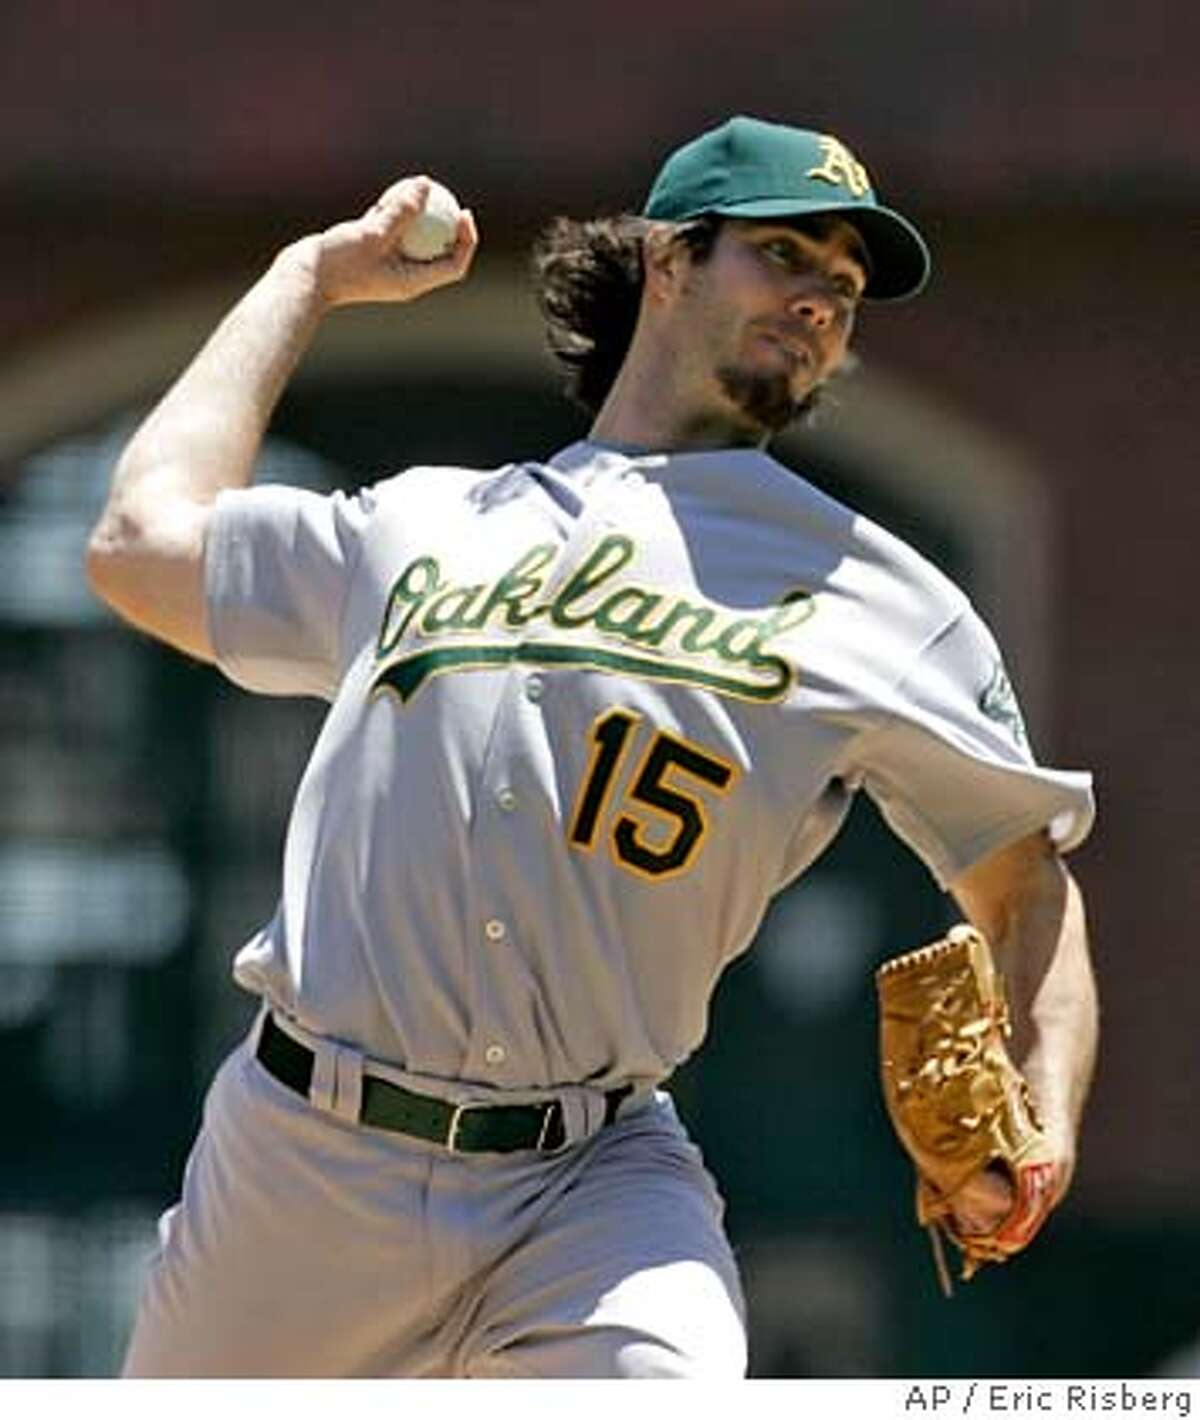 ** FILE ** Oakland Athletics' Dan Haren throws a pitch during a game against the San Francisco Giants in this file photo from June 9, 2007, in San Francisco. As the annual winter meetings approach next week, everybody wants to know whether Oakland's crafty general manager will offer up his top pitchers--All-Star Dan Haren, Joe Blanton, Harden or even closer Huston Street--to better his own low-budget operation. (AP Photo/Eric Risberg) JUNE 9, 2007 FILE PHOTO EFE OUT